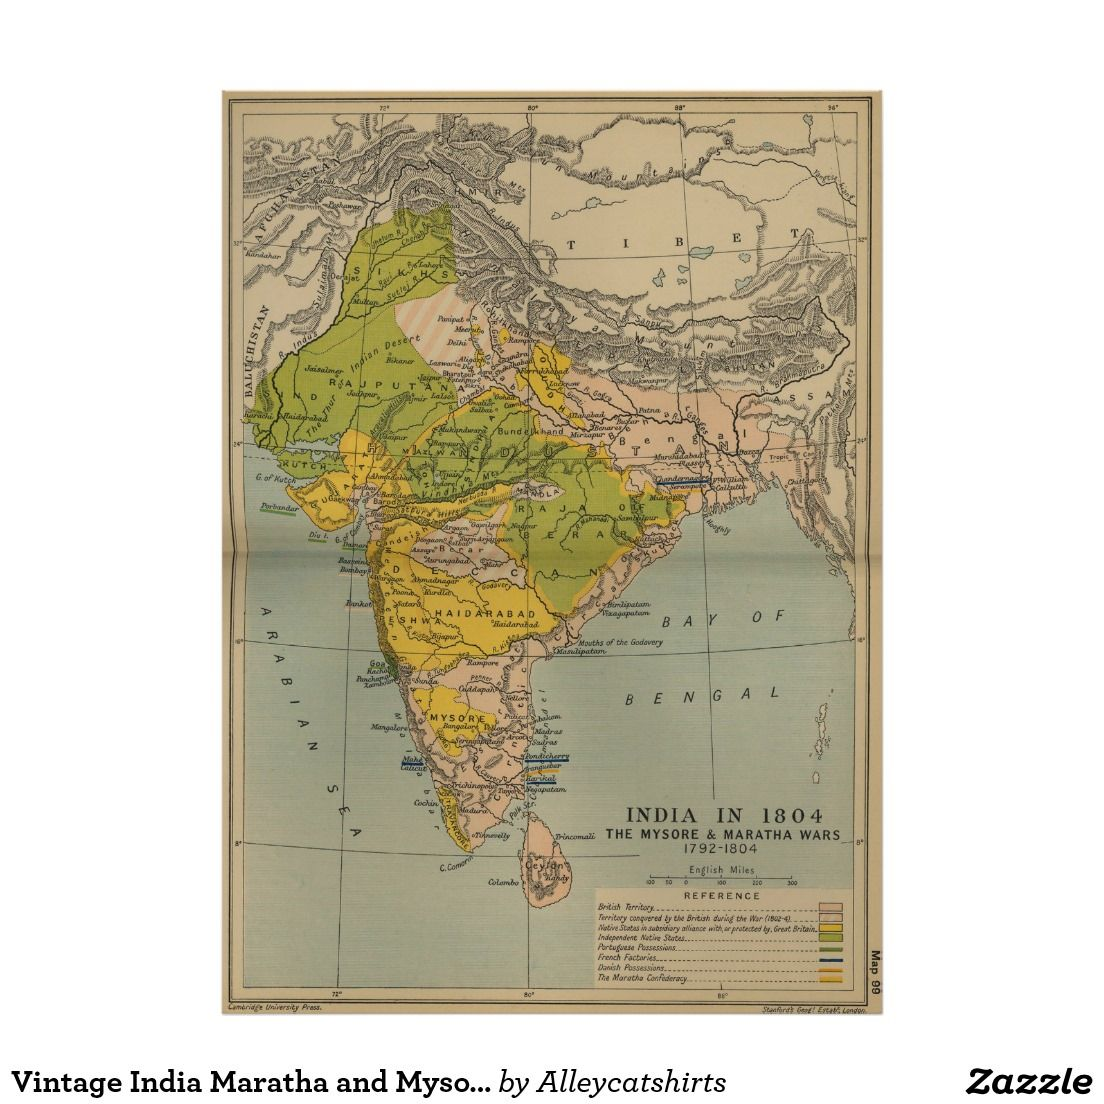 Vintage india maratha and mysore war map 1804 poster vintage map vintage india maratha and mysore war map 1804 poster gumiabroncs Choice Image